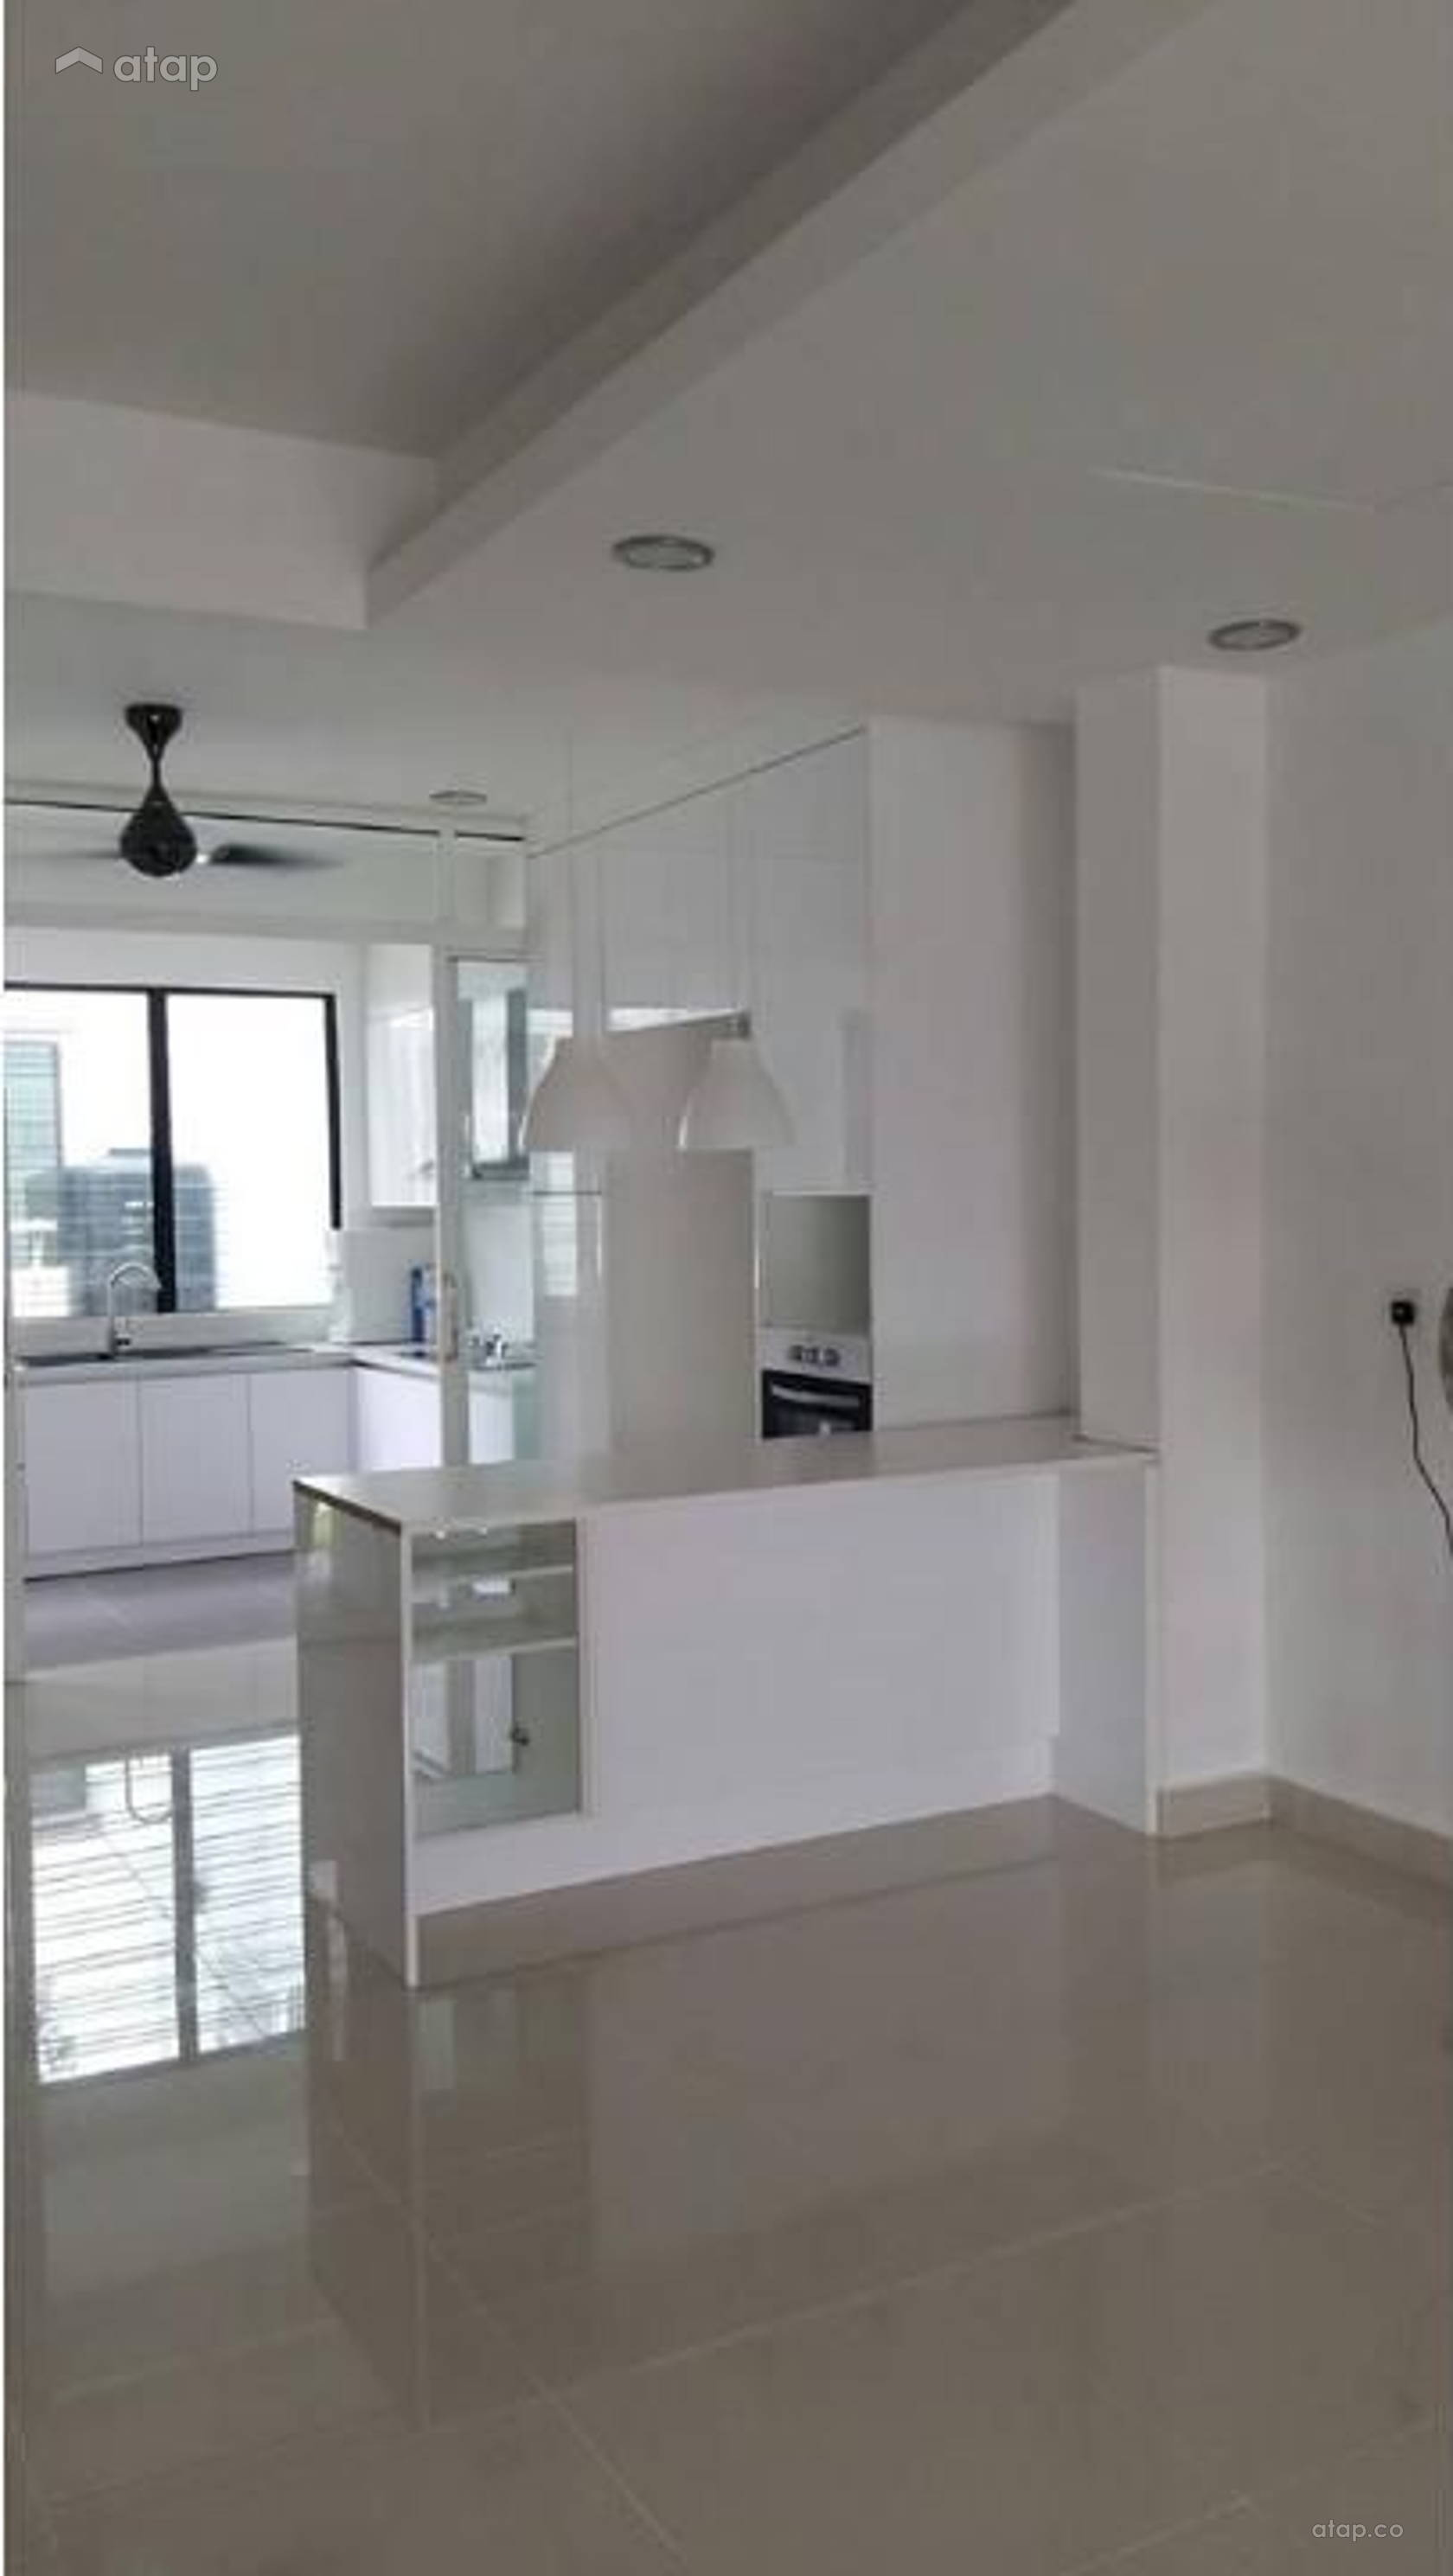 Dry Wet Kitchen For Residential Interior Design Renovation Ideas Photos And Price In Malaysia Atap Co